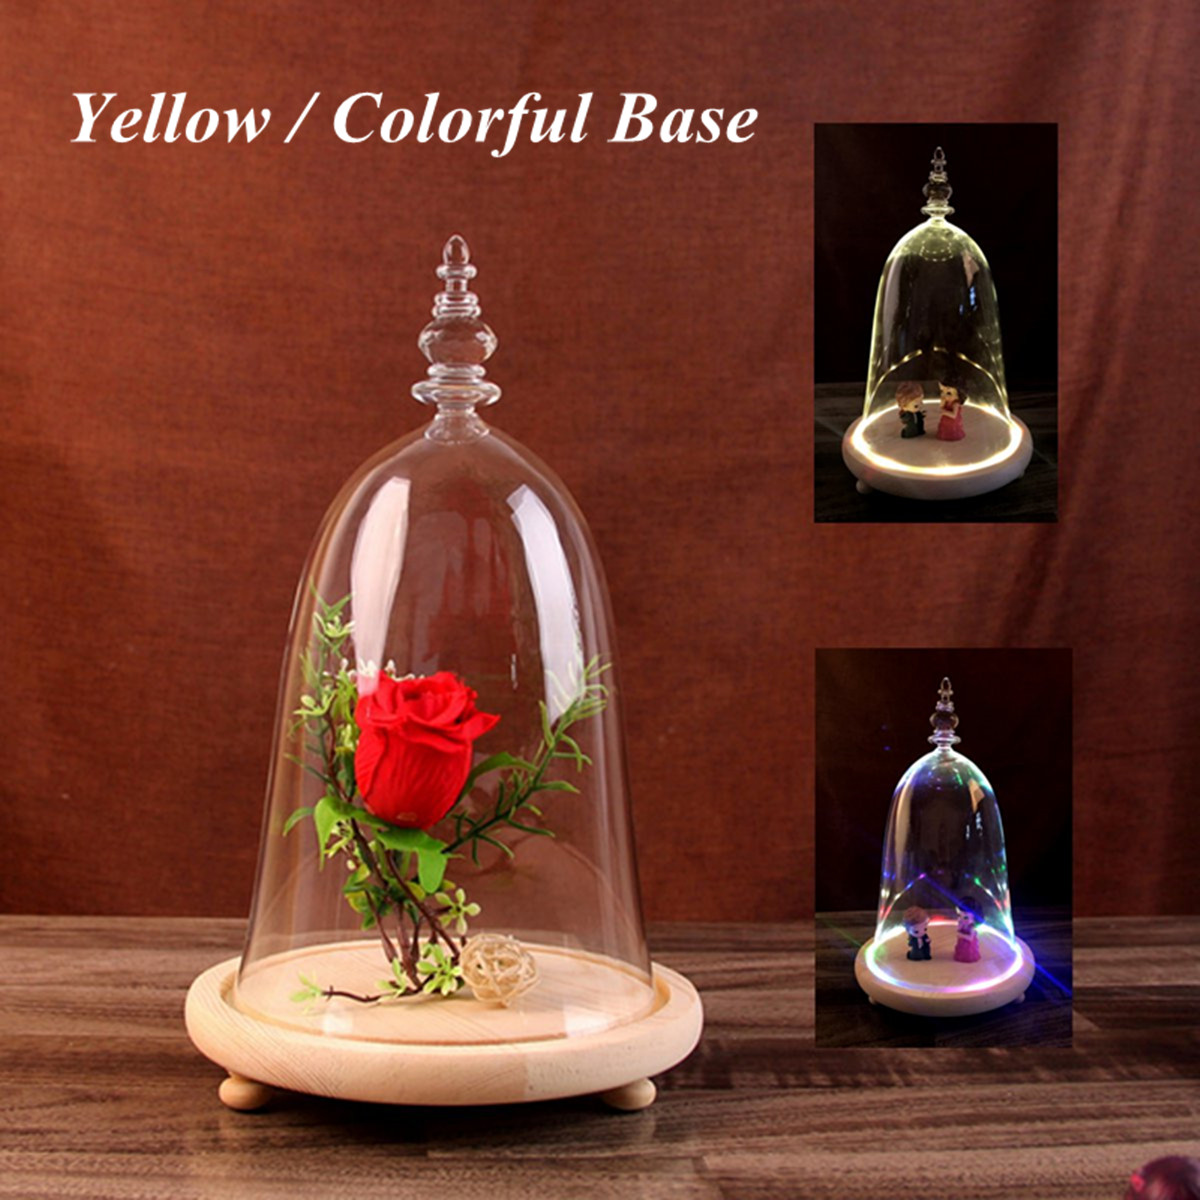 Moaere Decorative Clear Glass Apothecary Cloche Bell Jars Centerpiece Dome Display with Bamboo Base Black Friday Big Deals